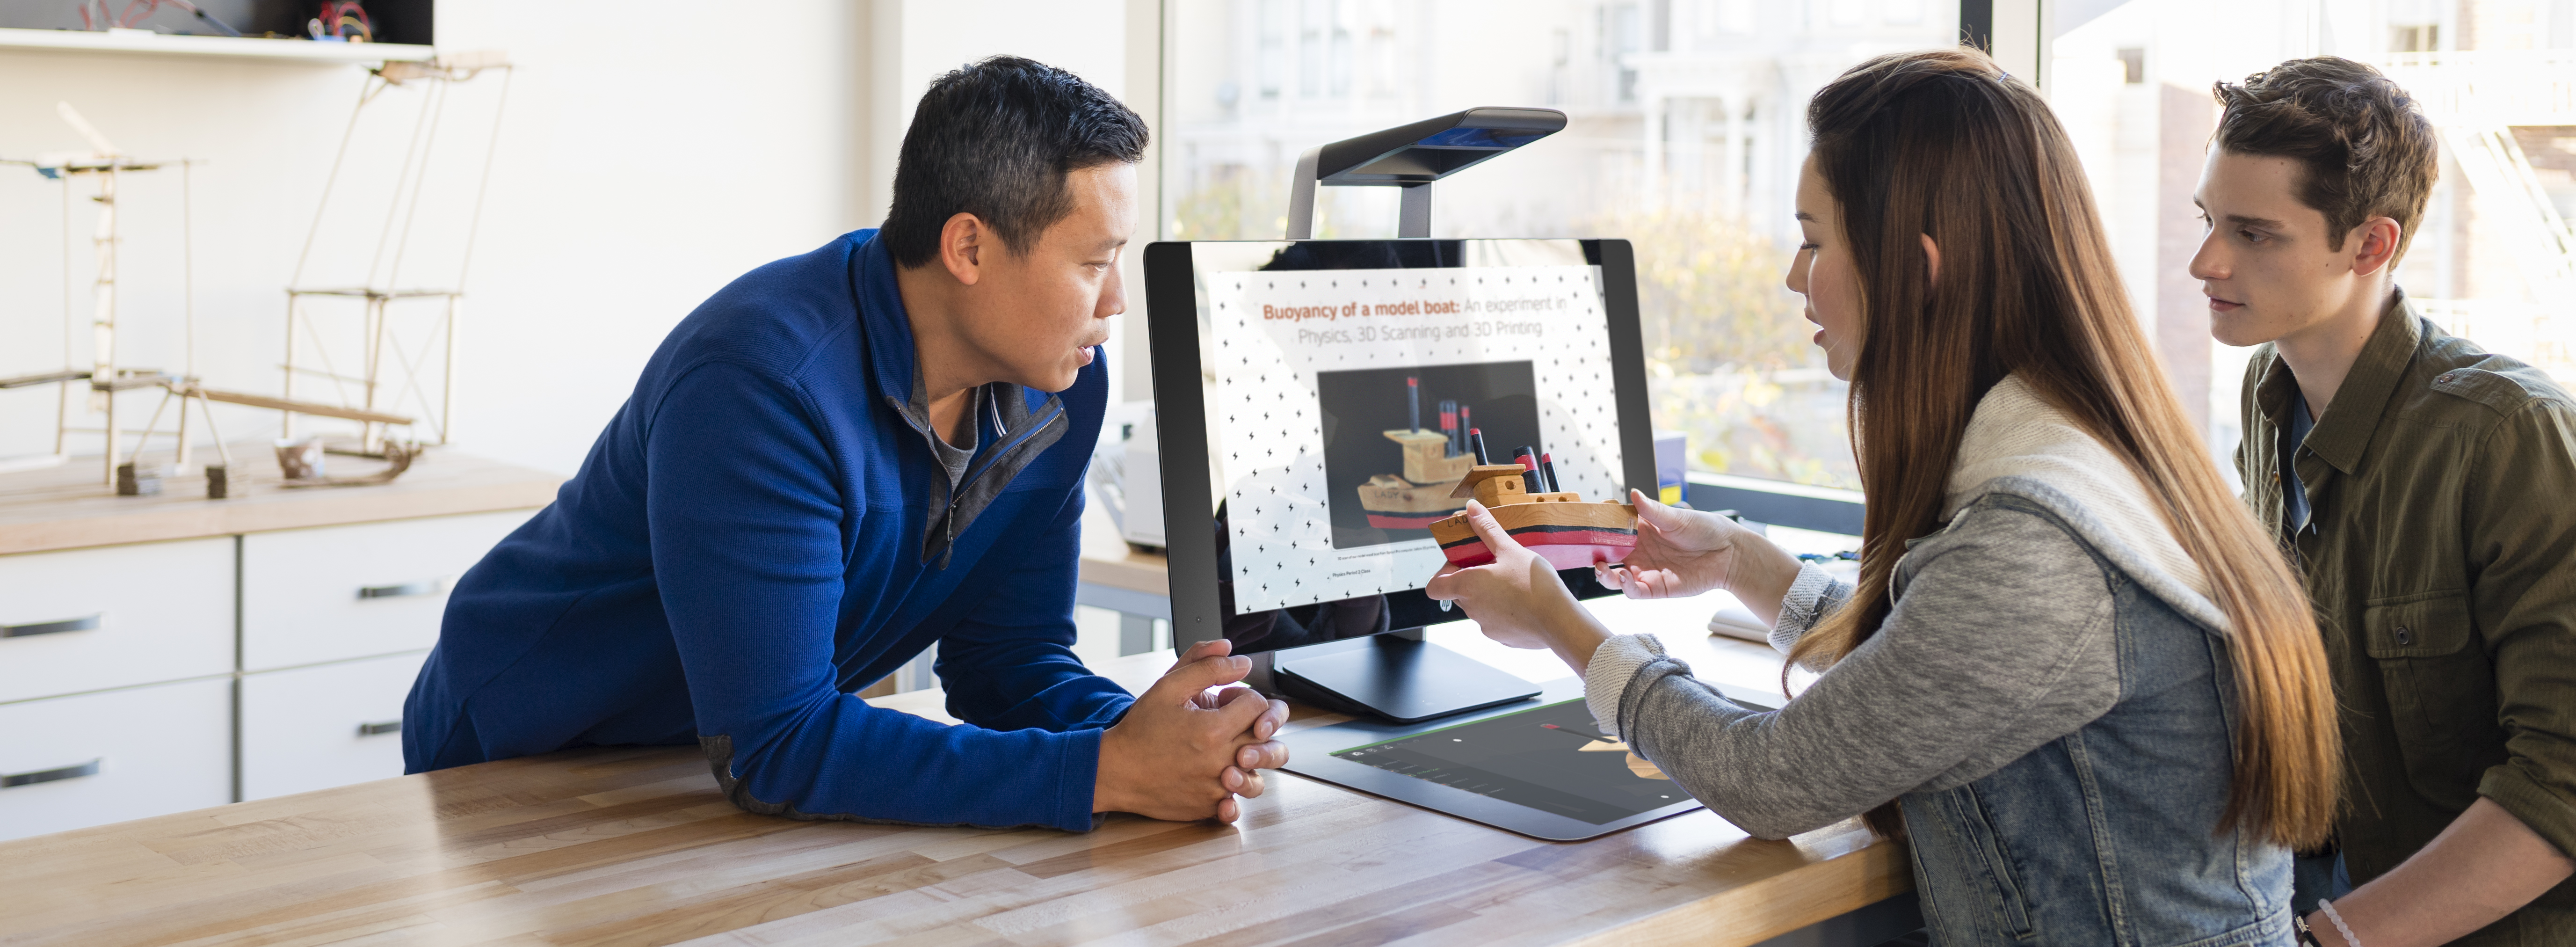 HP's strange Sprout all-in-one gets an upgrade aimed at education